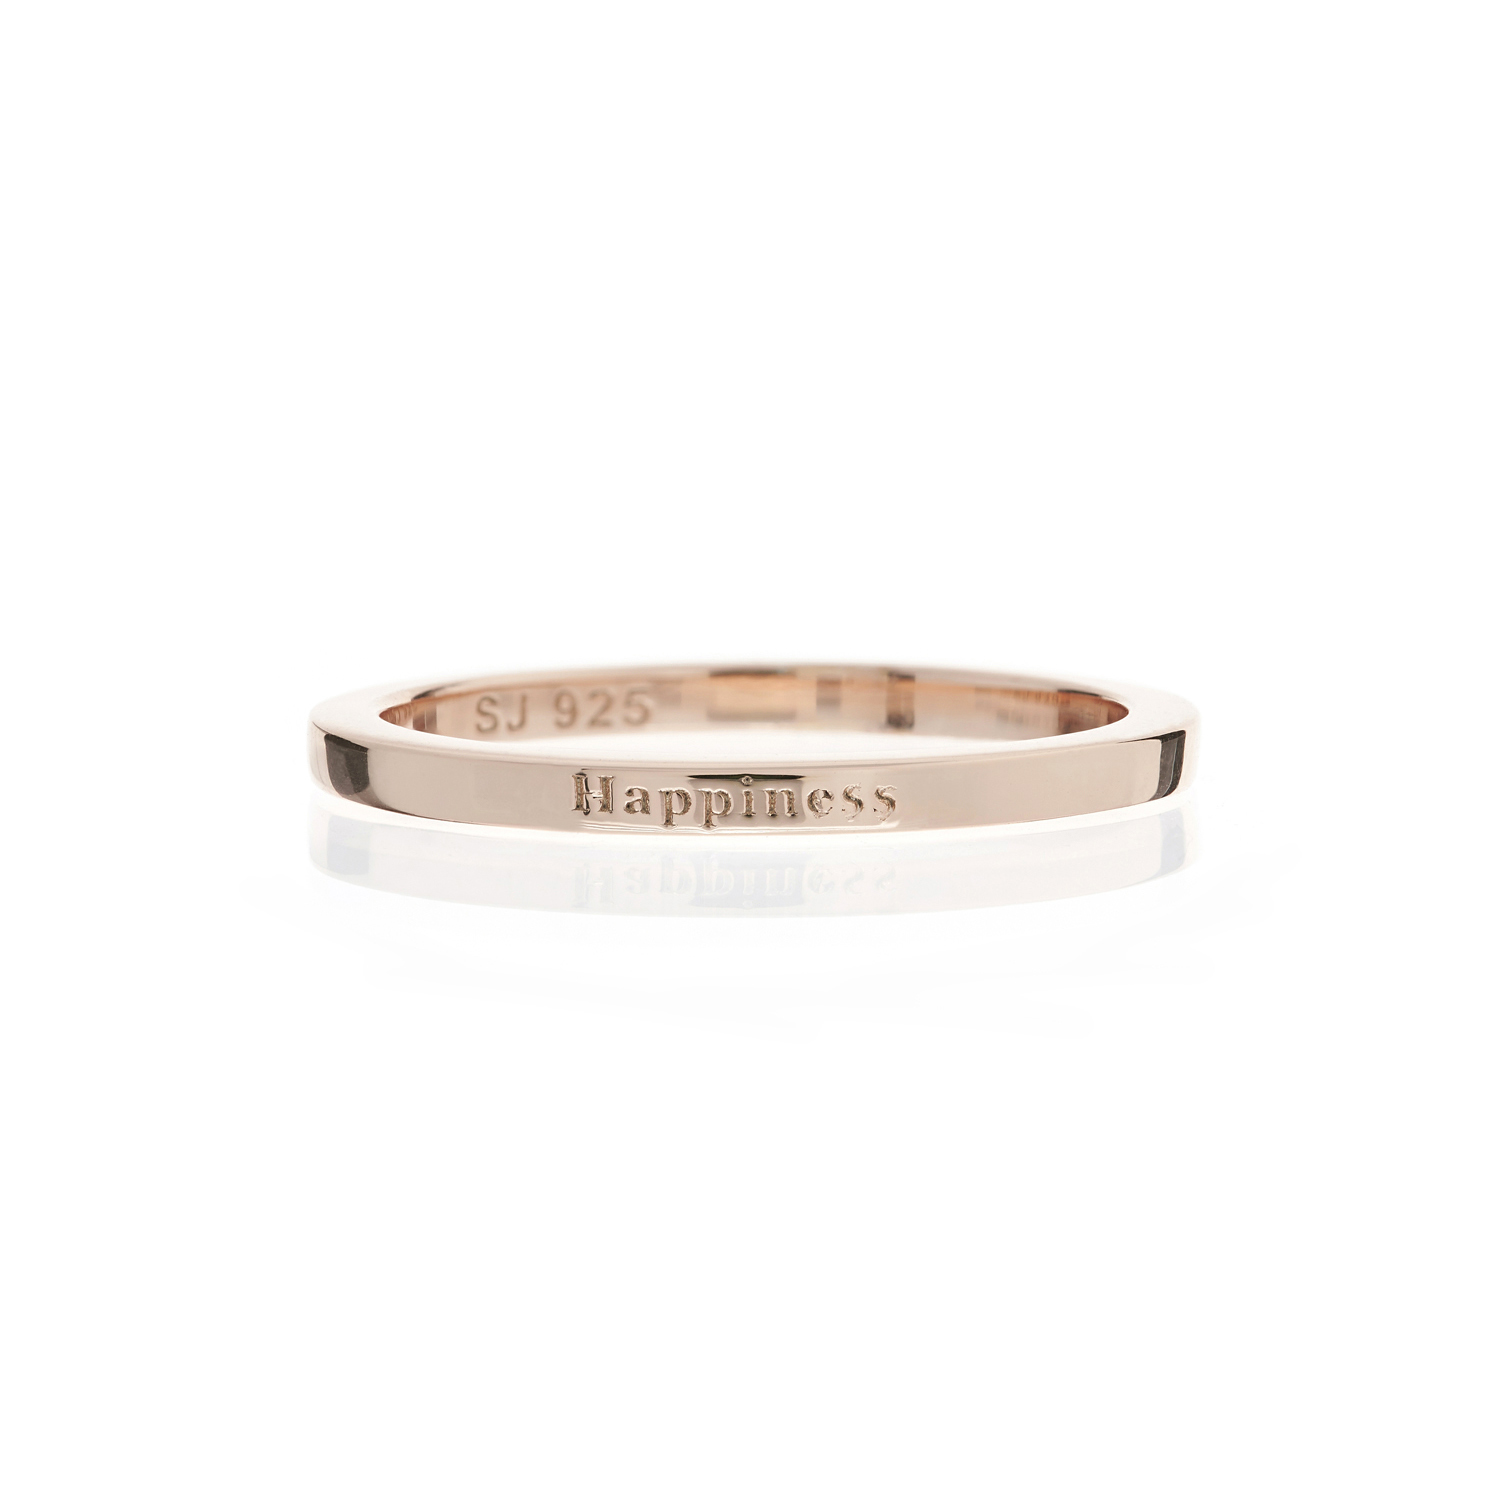 Happiness ring in rose gold